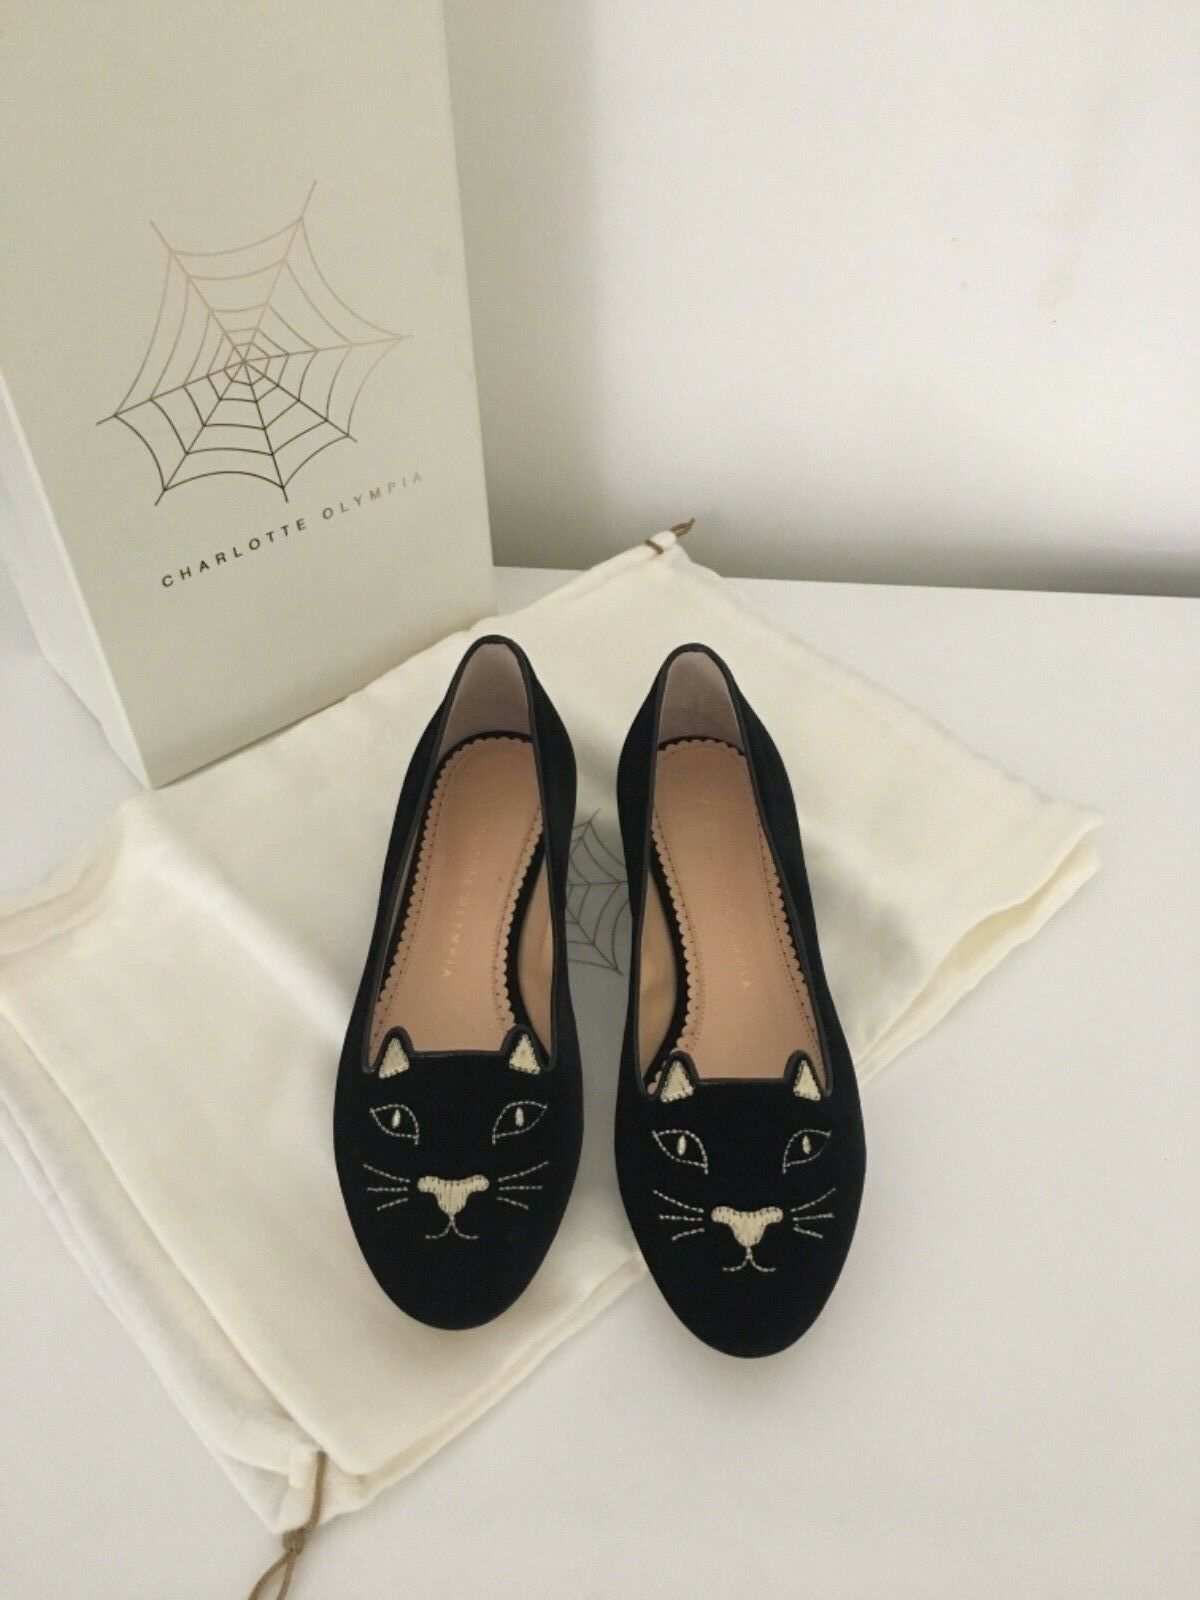 Charlotte olympia kitty flat 36 new with box and and and invoice 83bd27